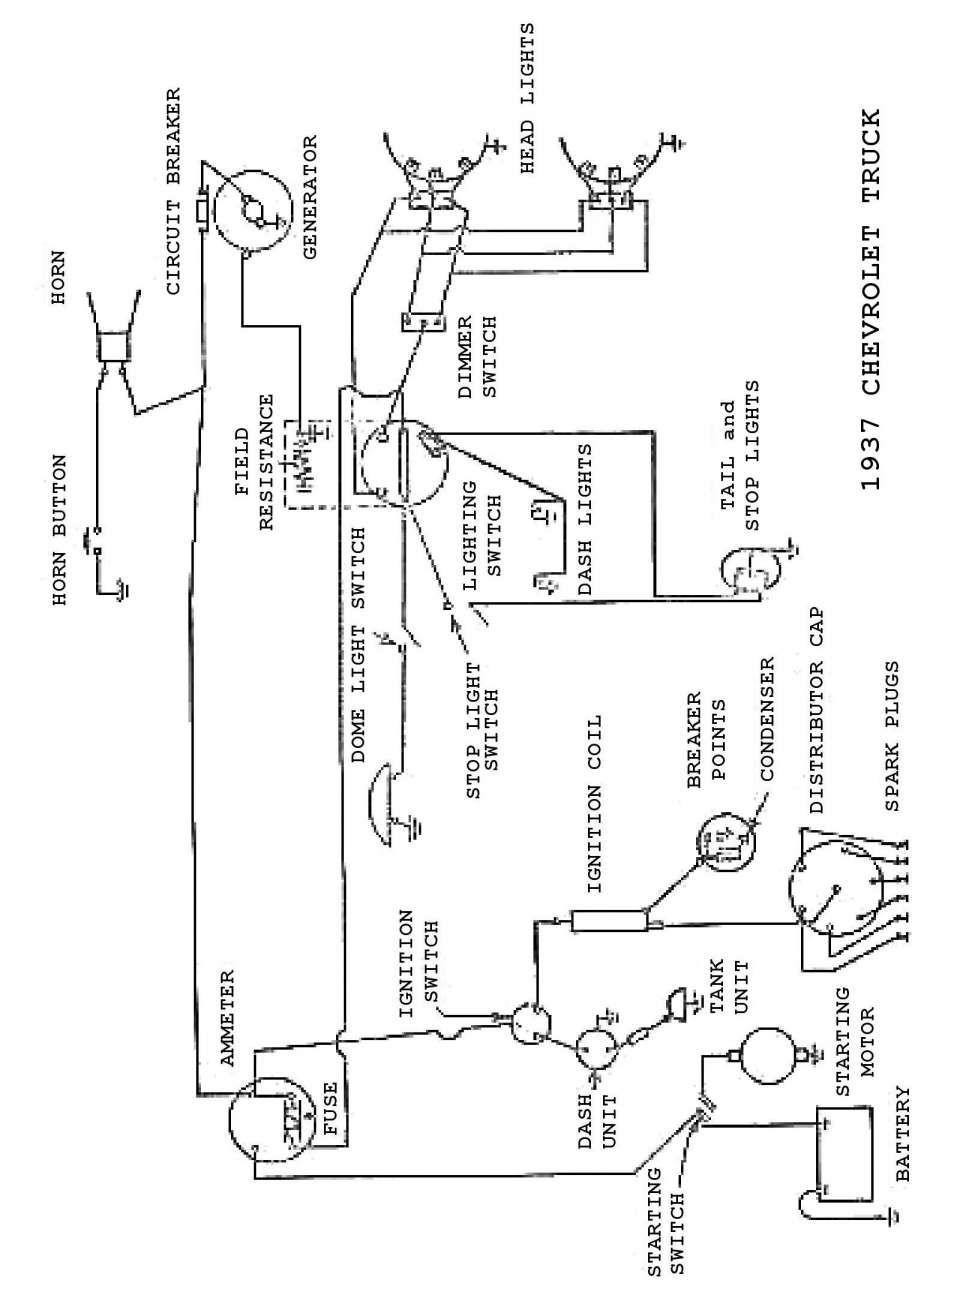 1998 Chevrolet Truck Wiring Diagram and Chevy Wiring